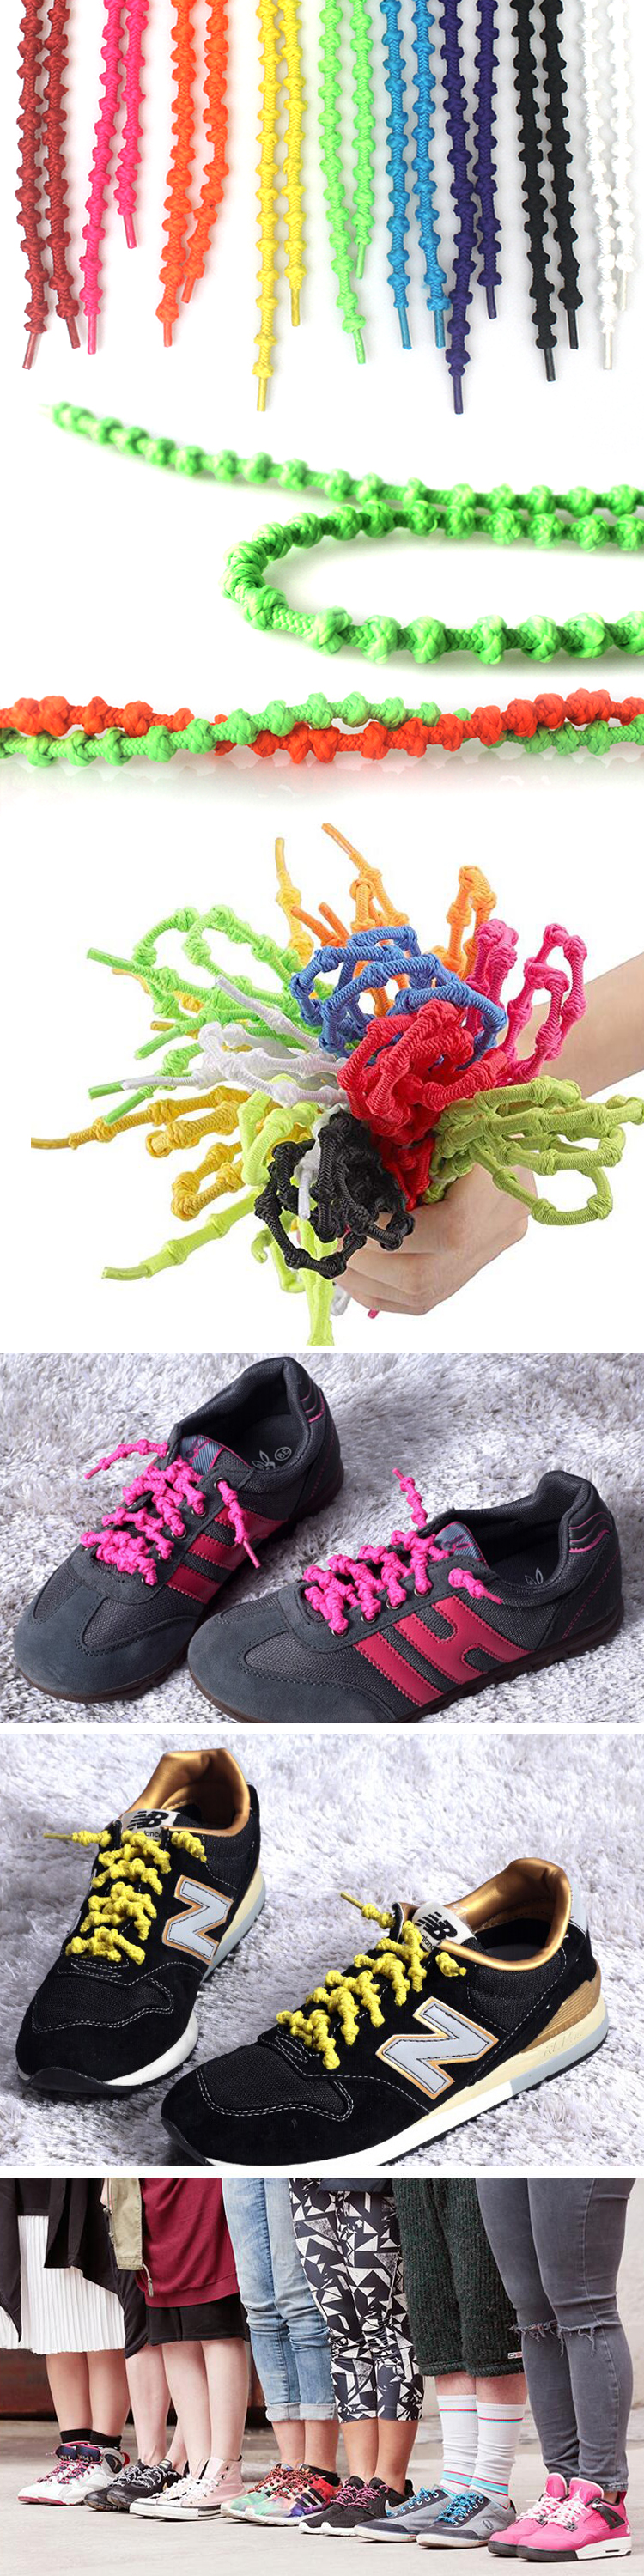 Promotional Elastic Spring Bamboo Knot Shoe Lace for Triathlon